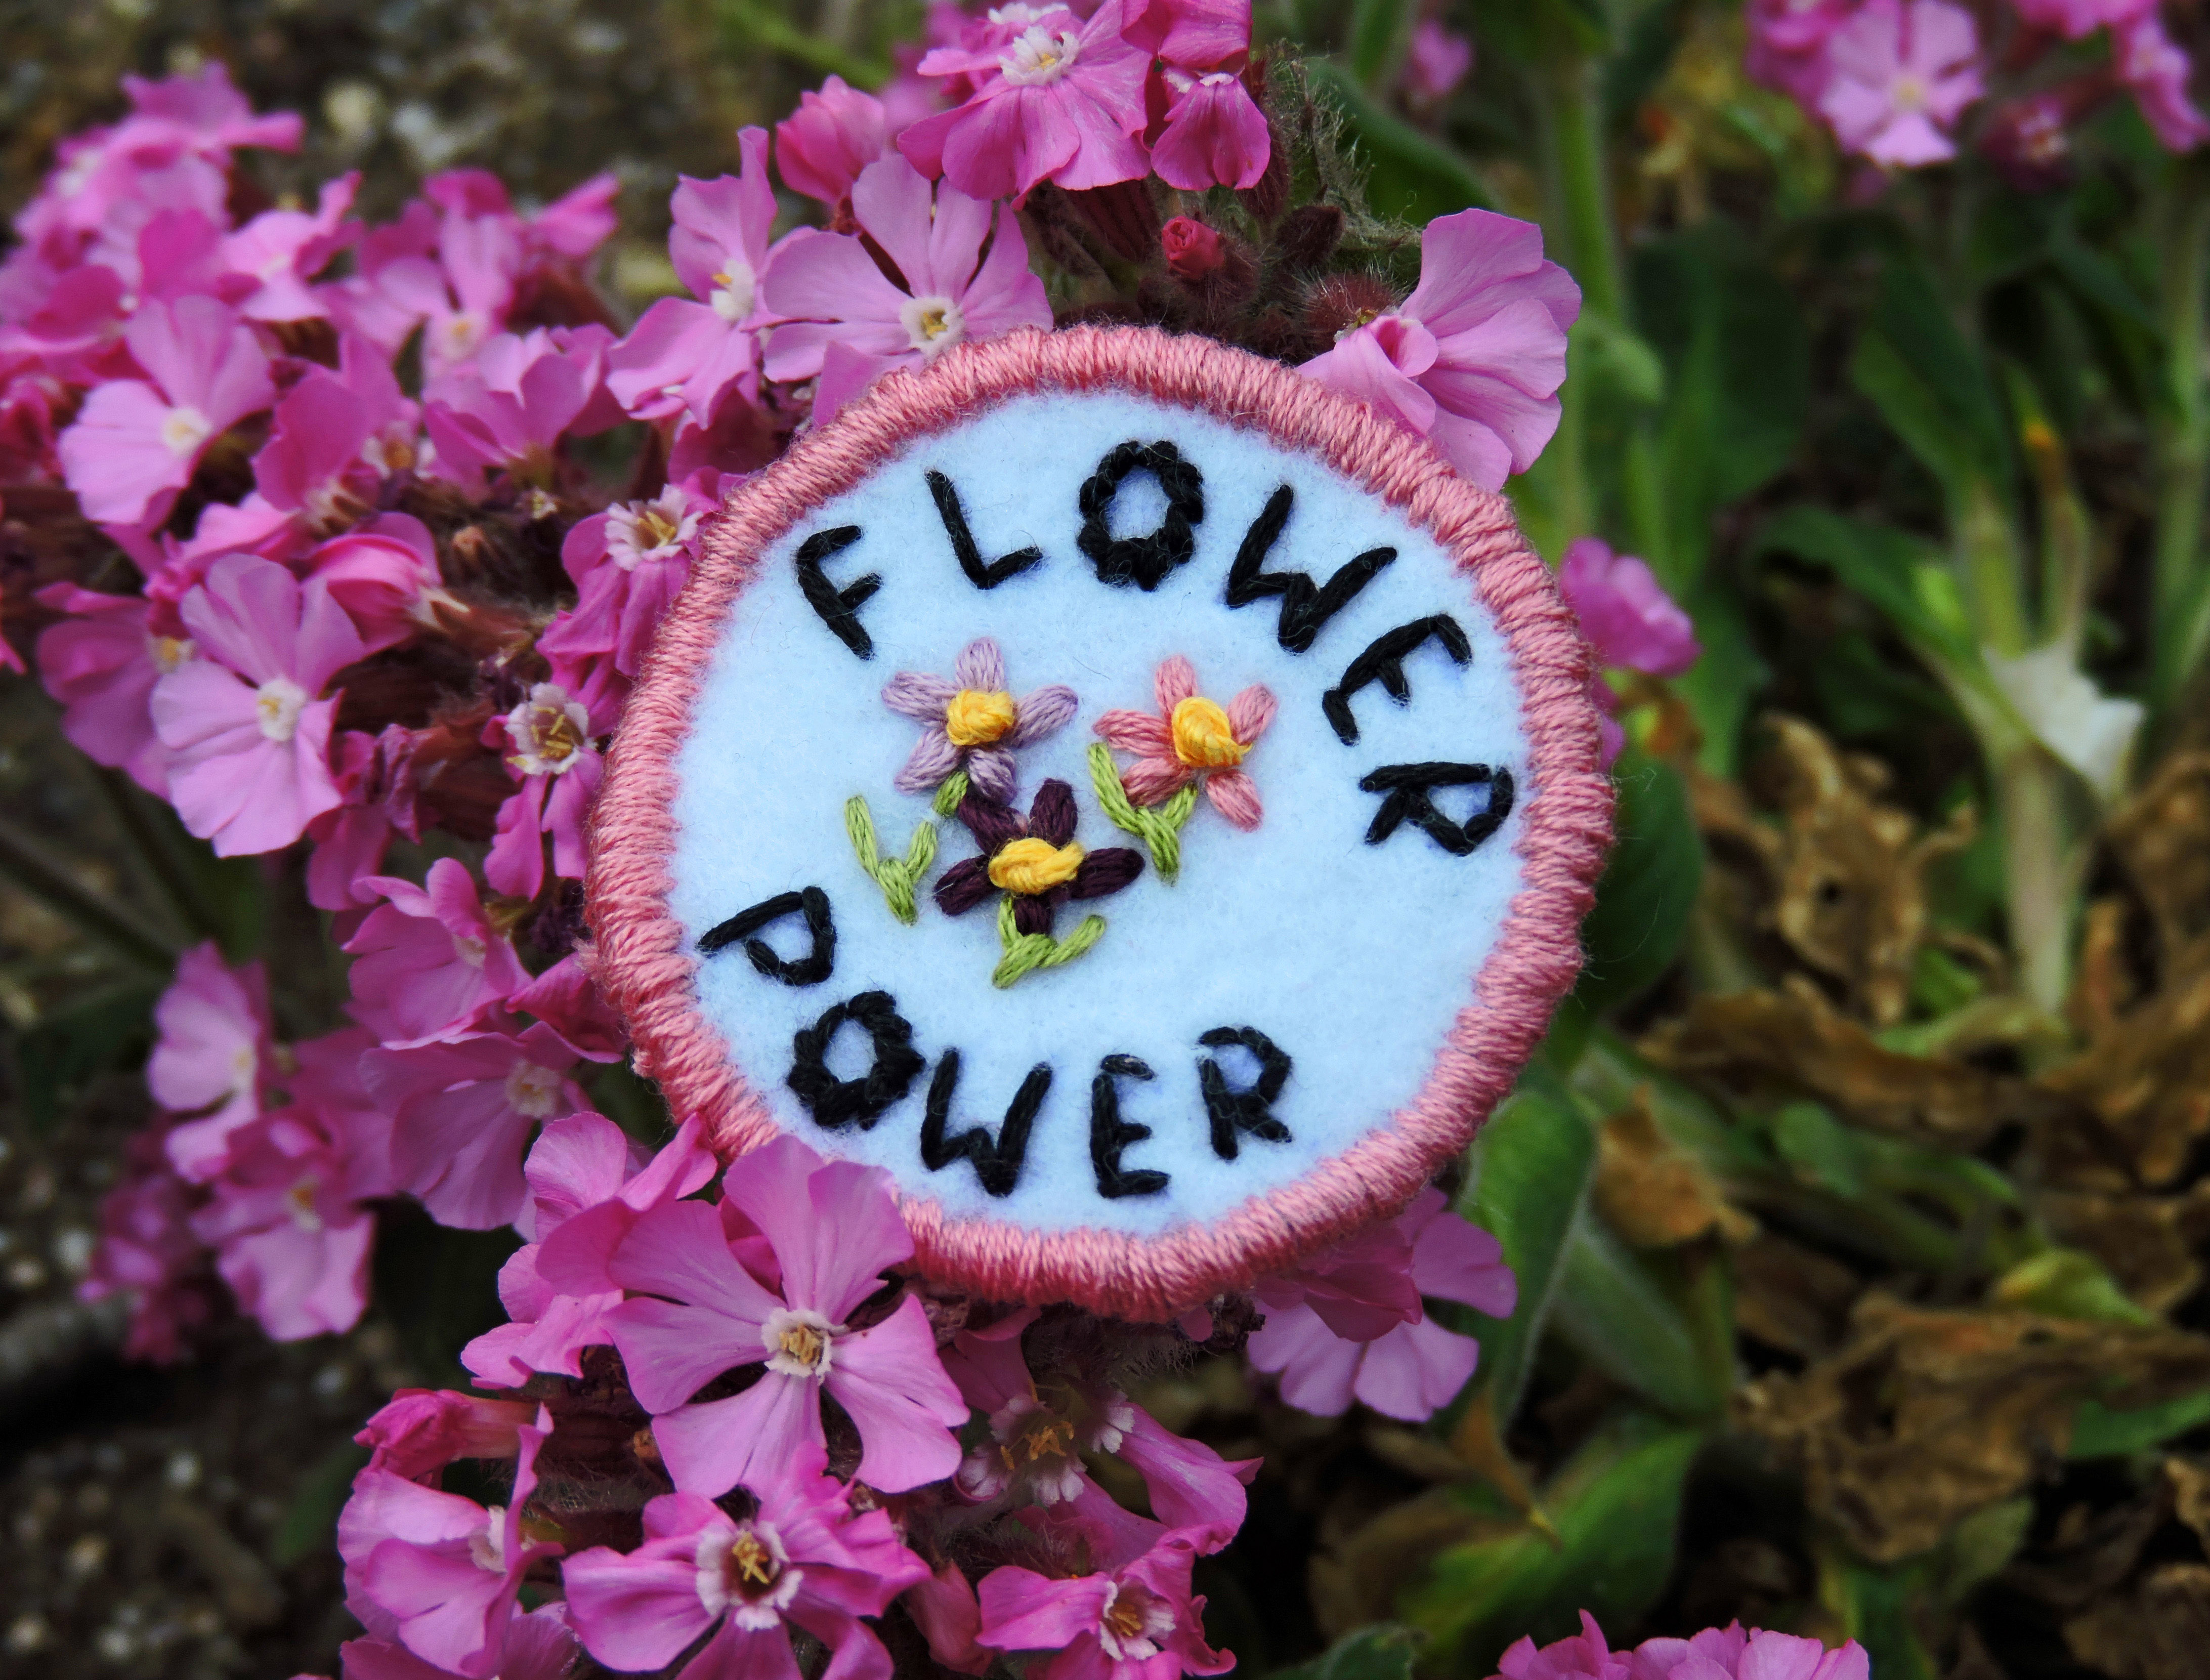 Flower Patch images